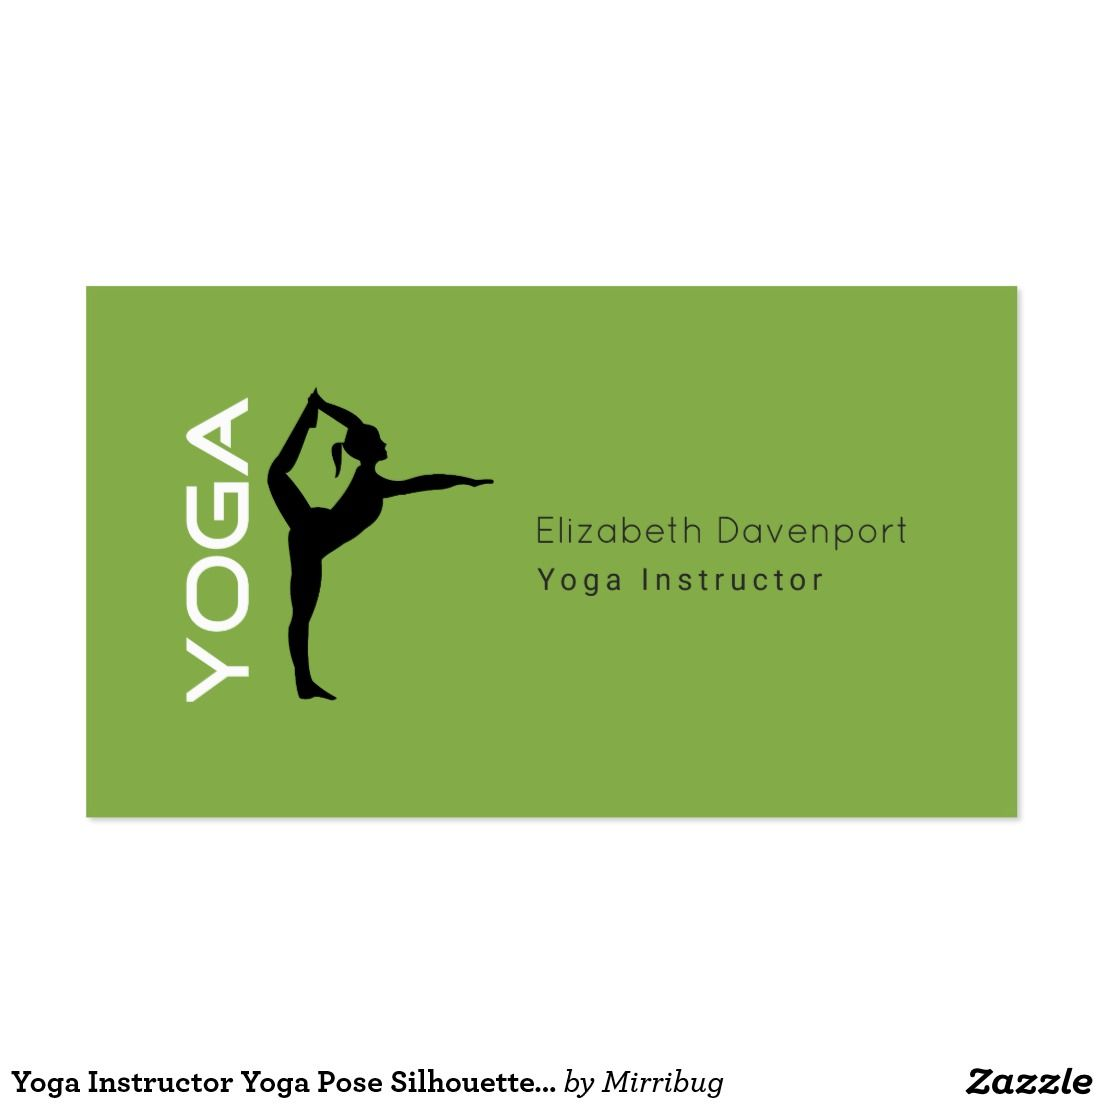 Yoga Instructor Yoga Pose Silhouette on Green Back Business Card ...